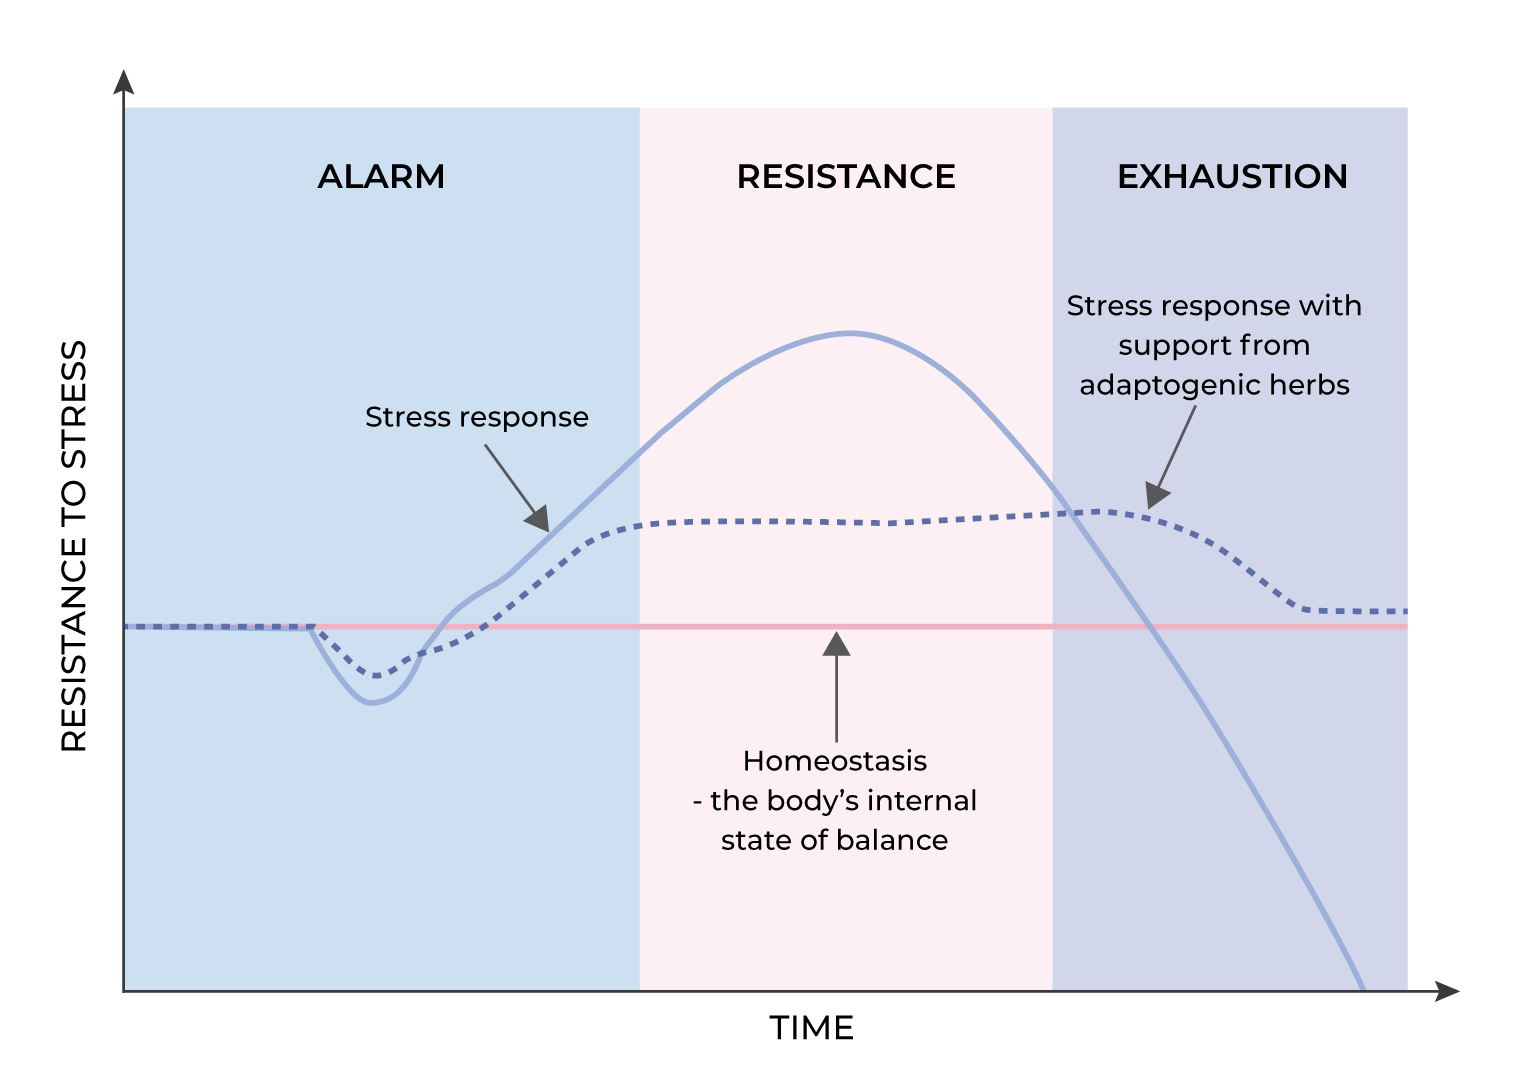 stress response with adaptogens